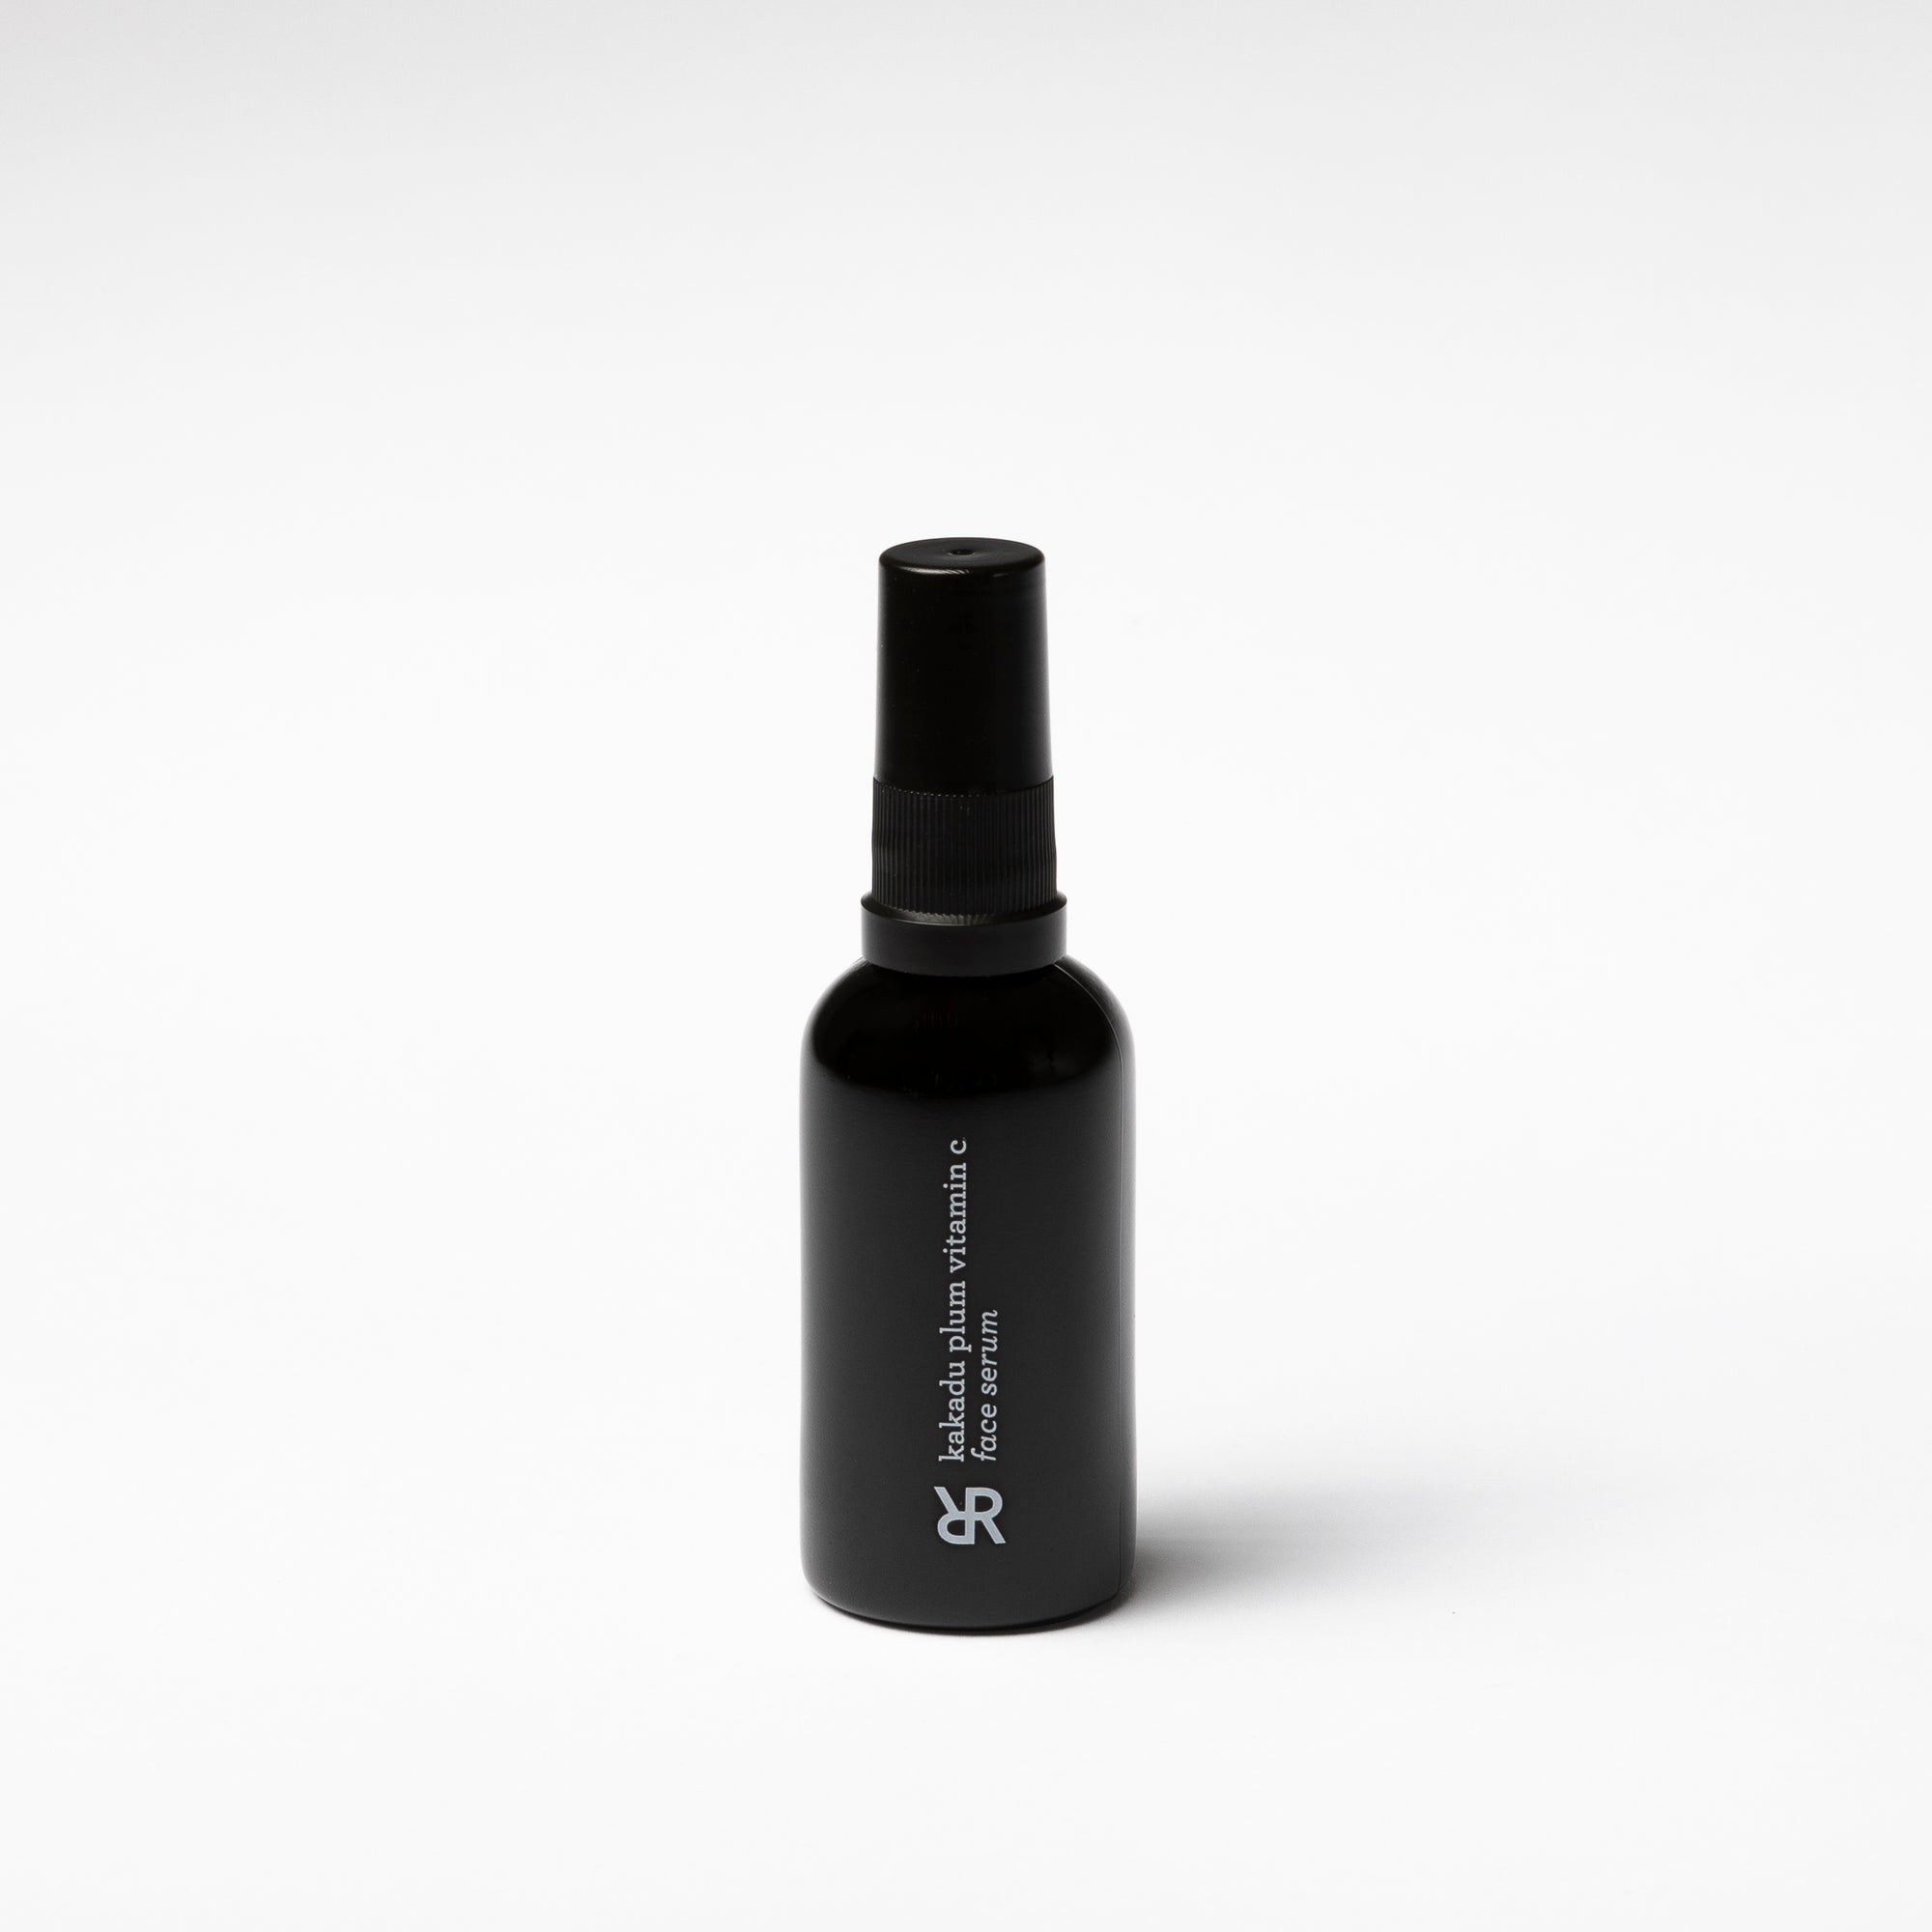 Rohr Remedy Kakadu Plum Face Serum. 100% natural and organic skincare. Buy at Skinbase.com.au